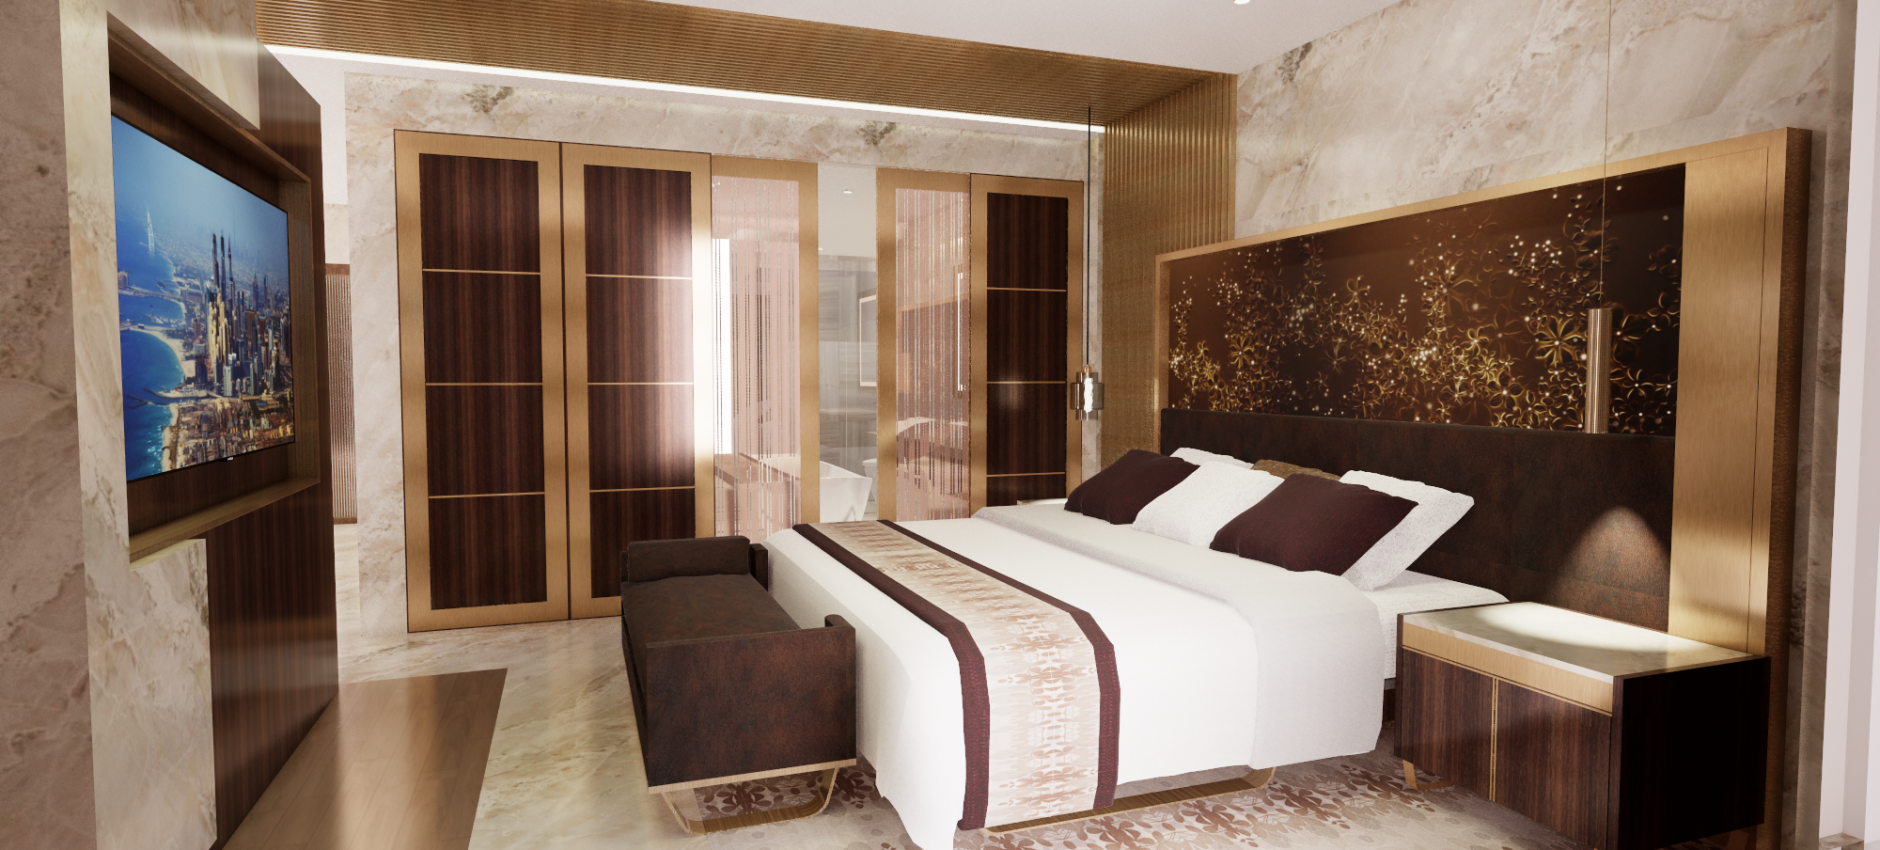 hotel_suite-07.png